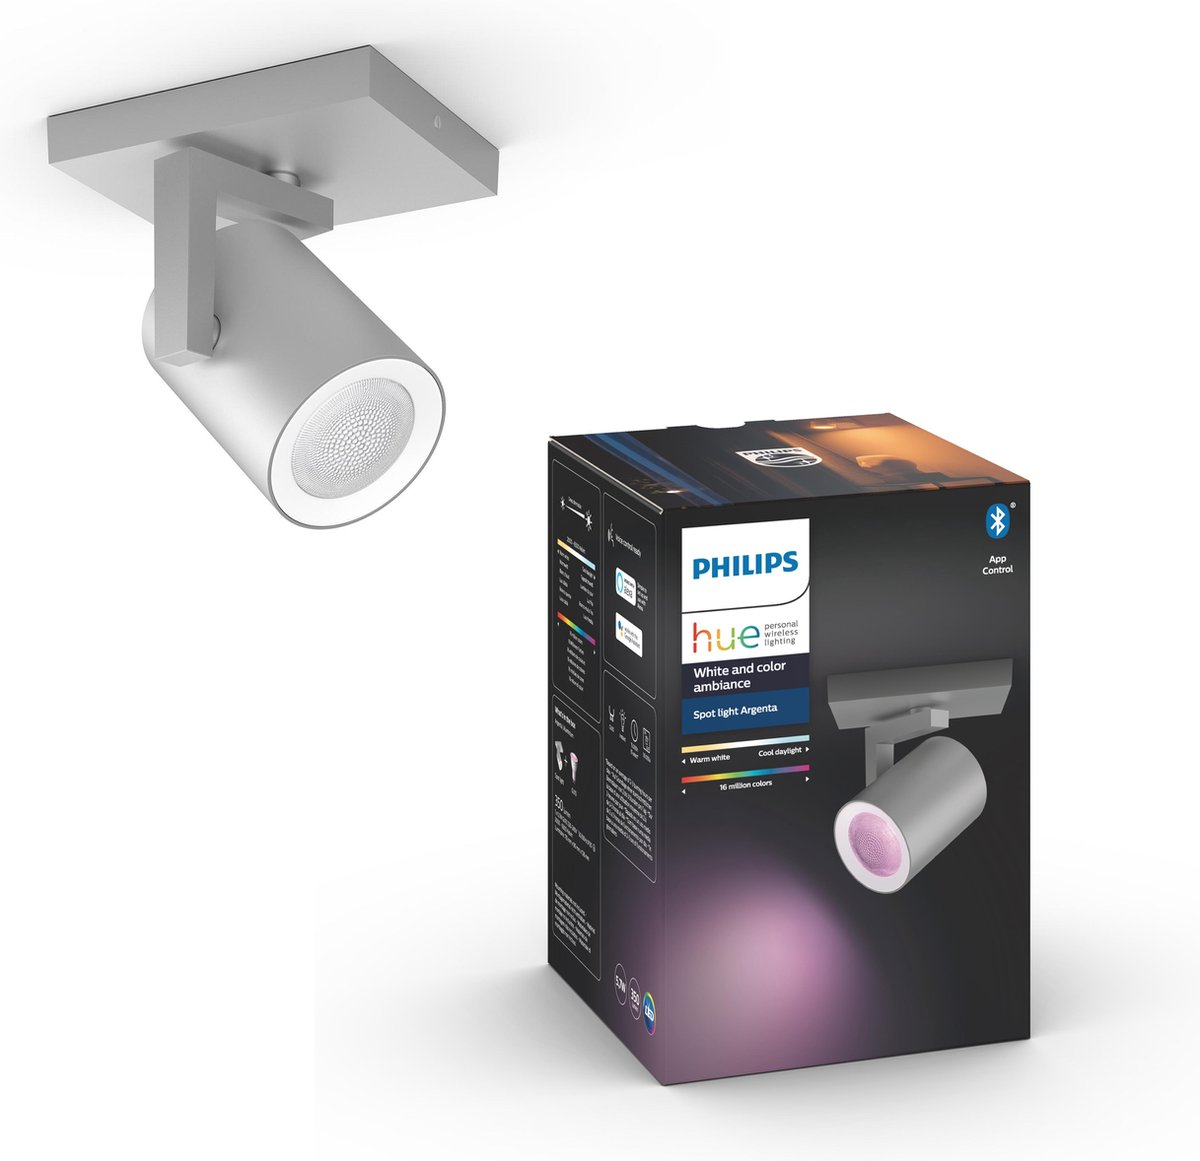 Philips Hue - Argenta - White and Color Ambiance - opbouwspot - 1 lichtpunt - aluminium - Bluetooth